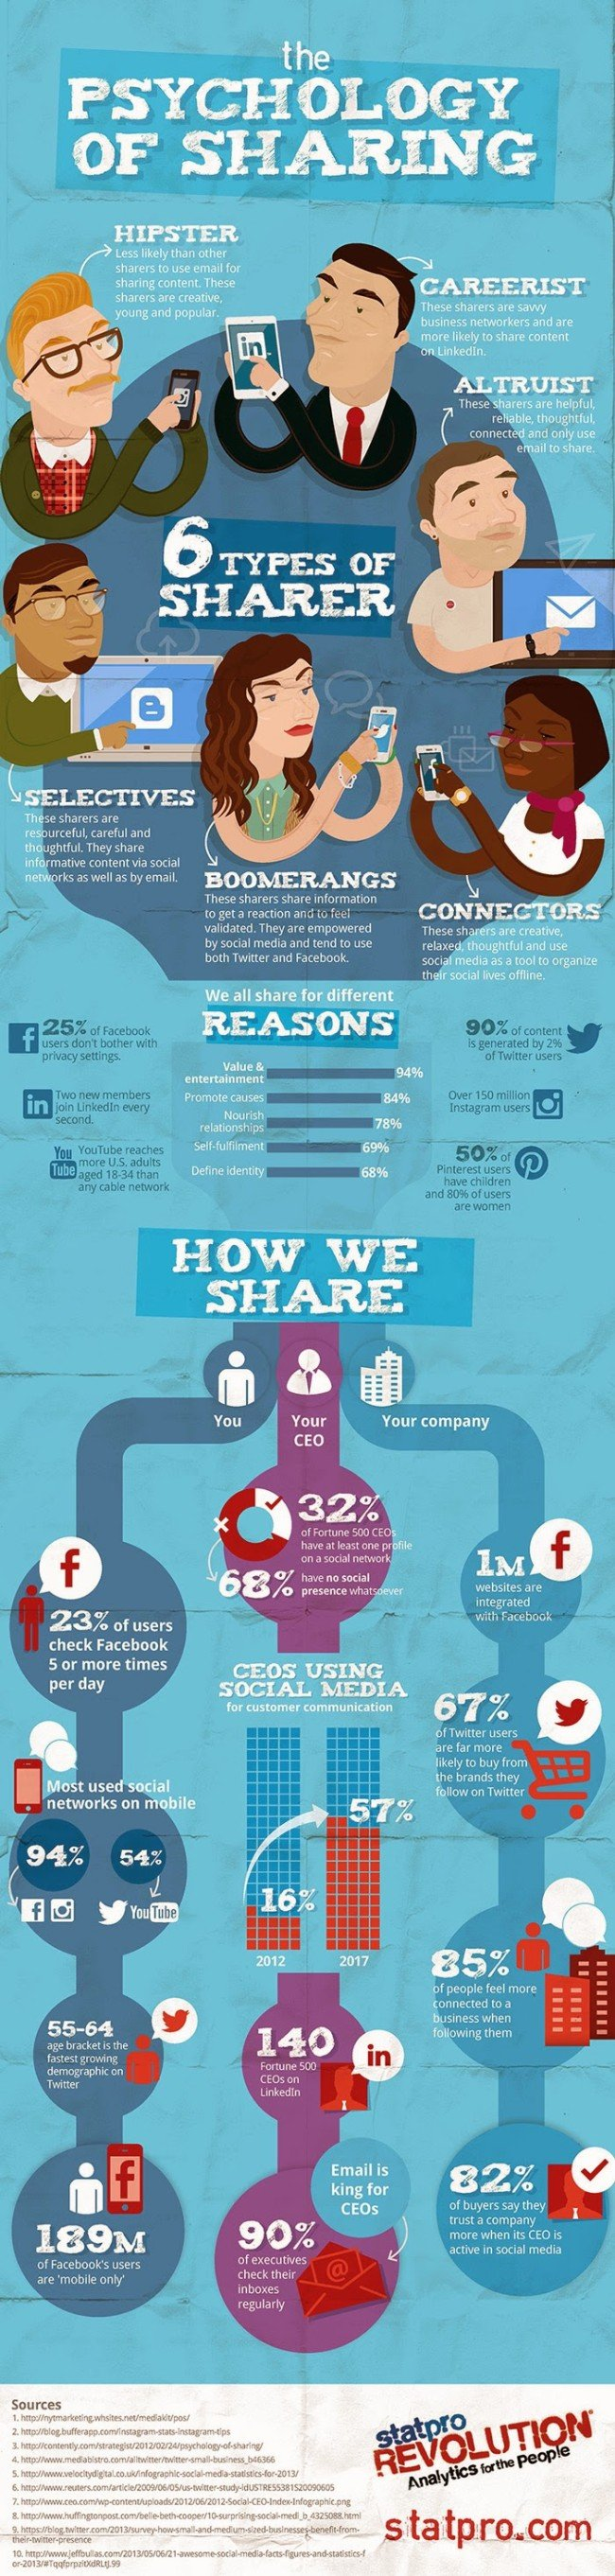 INFOGRAPHIC_social-psychology-sharing 700pxl Wide